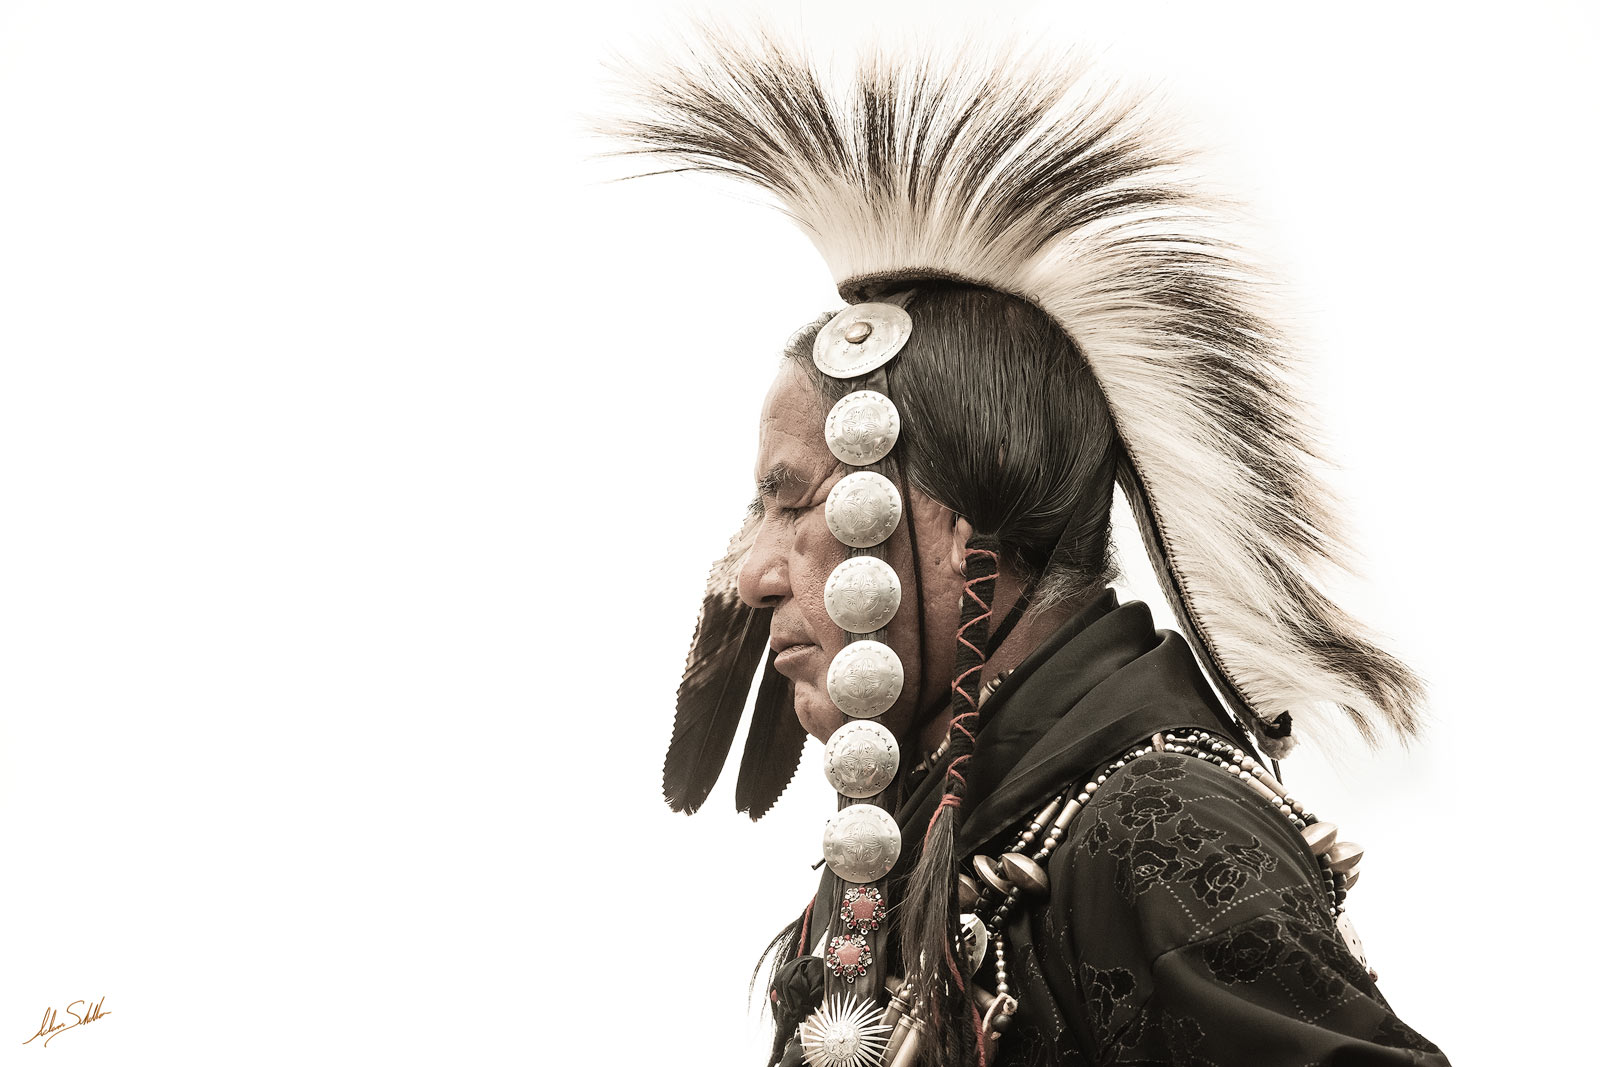 2010, Indian, NM, Native American, New Mexico, Taos Pueblo, USA, pow wow, photo